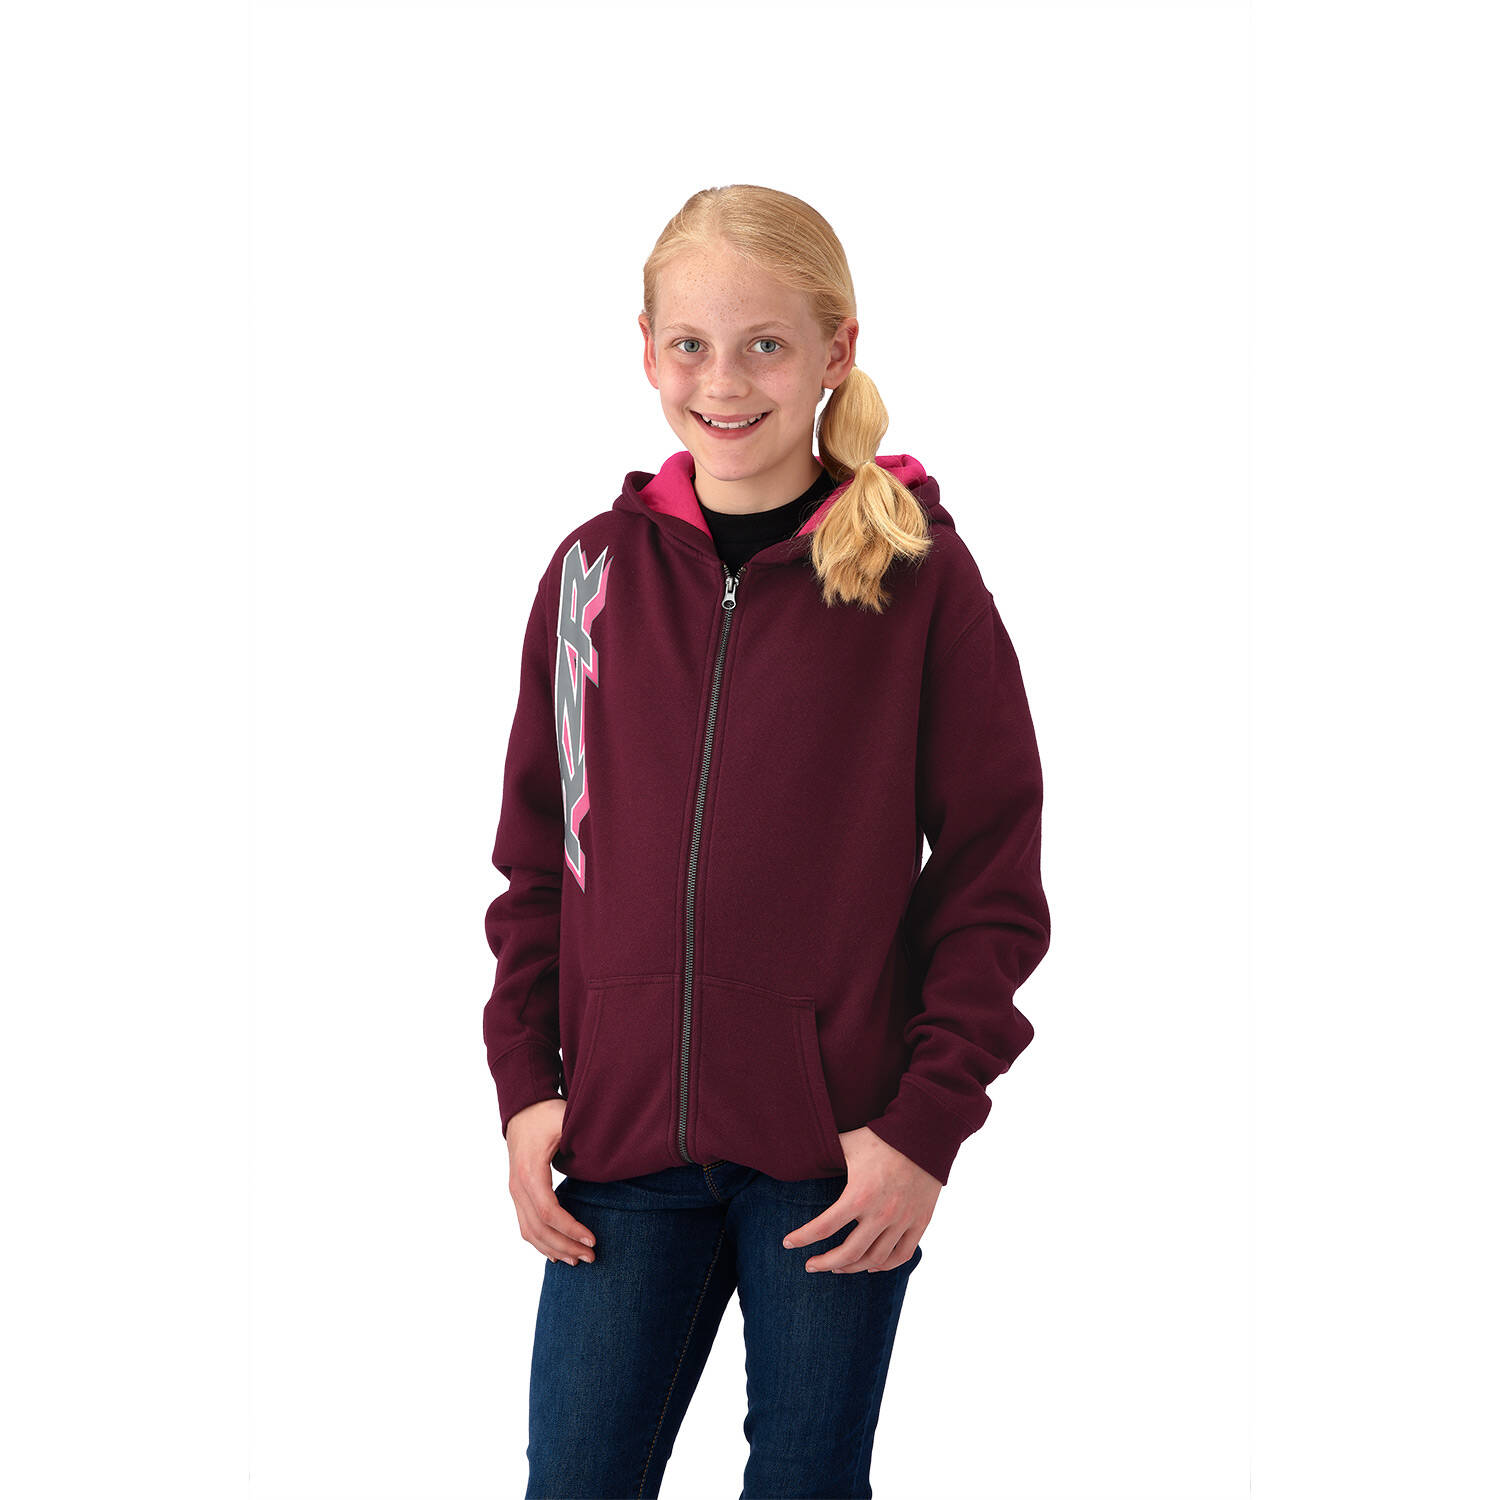 Youth Girl's Full-Zip Hoodie Sweatshirt, Berry